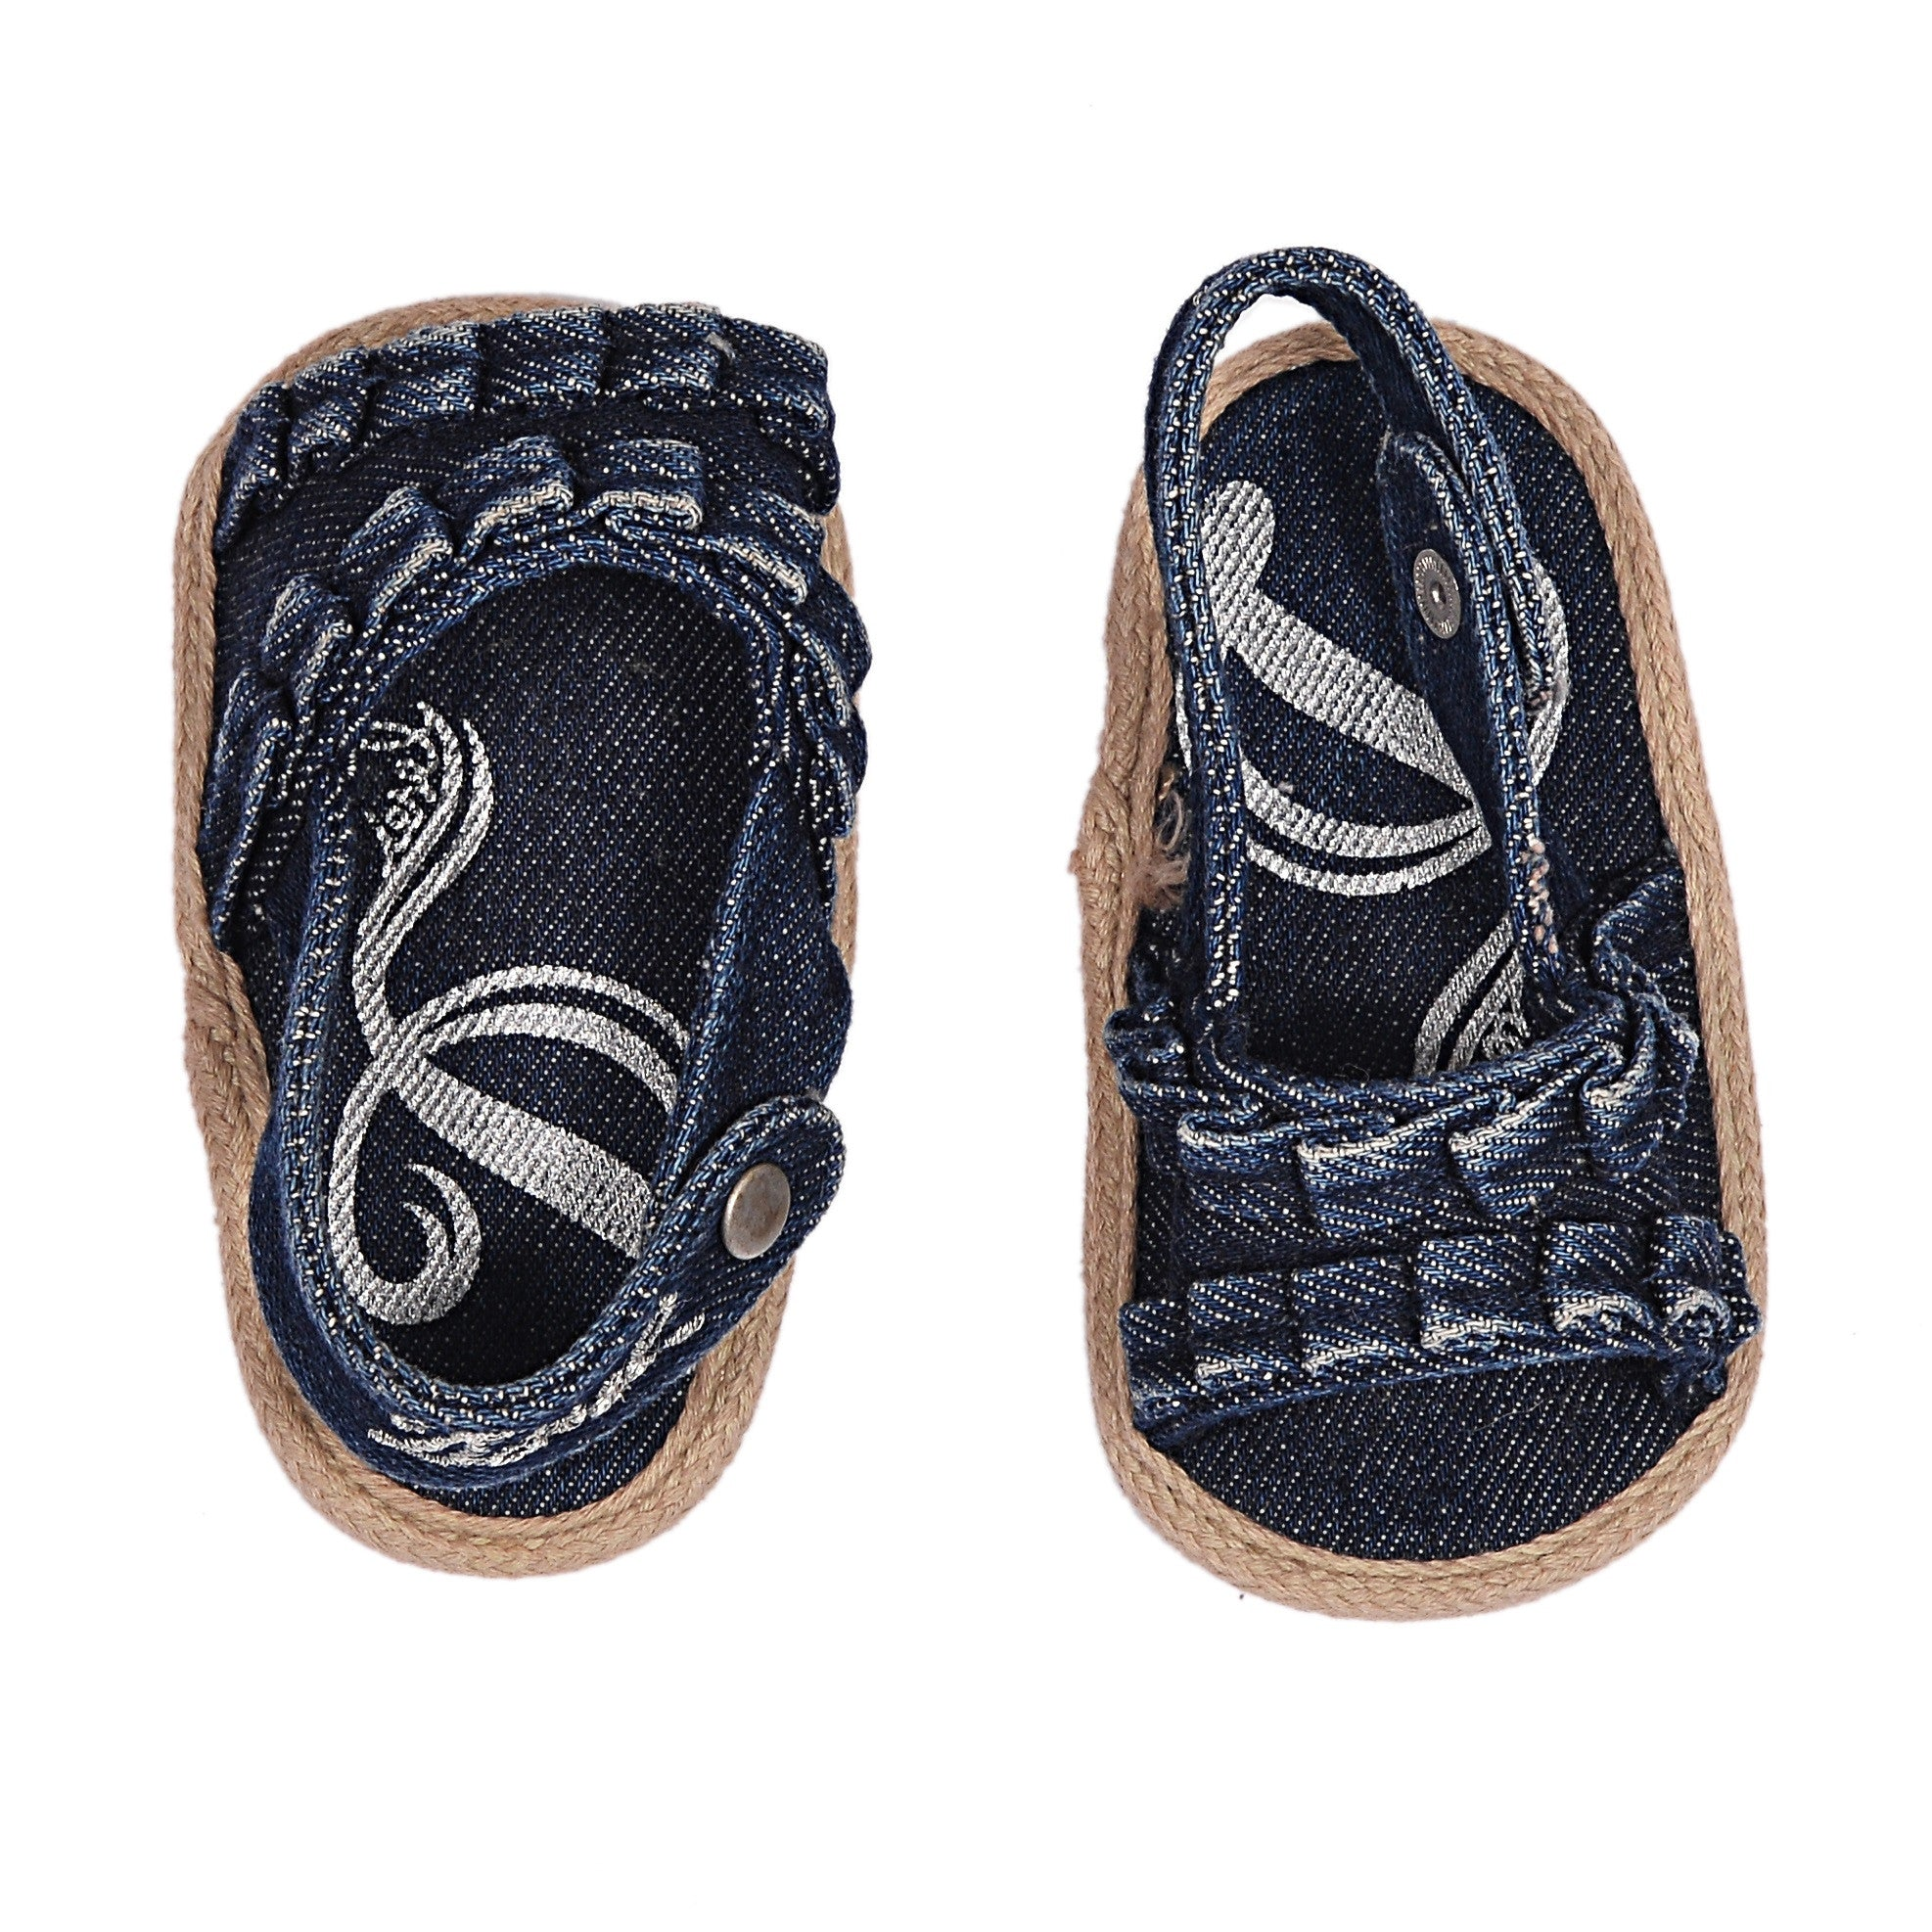 PON PON DENIM OPEN TOE LOGO SANDALS